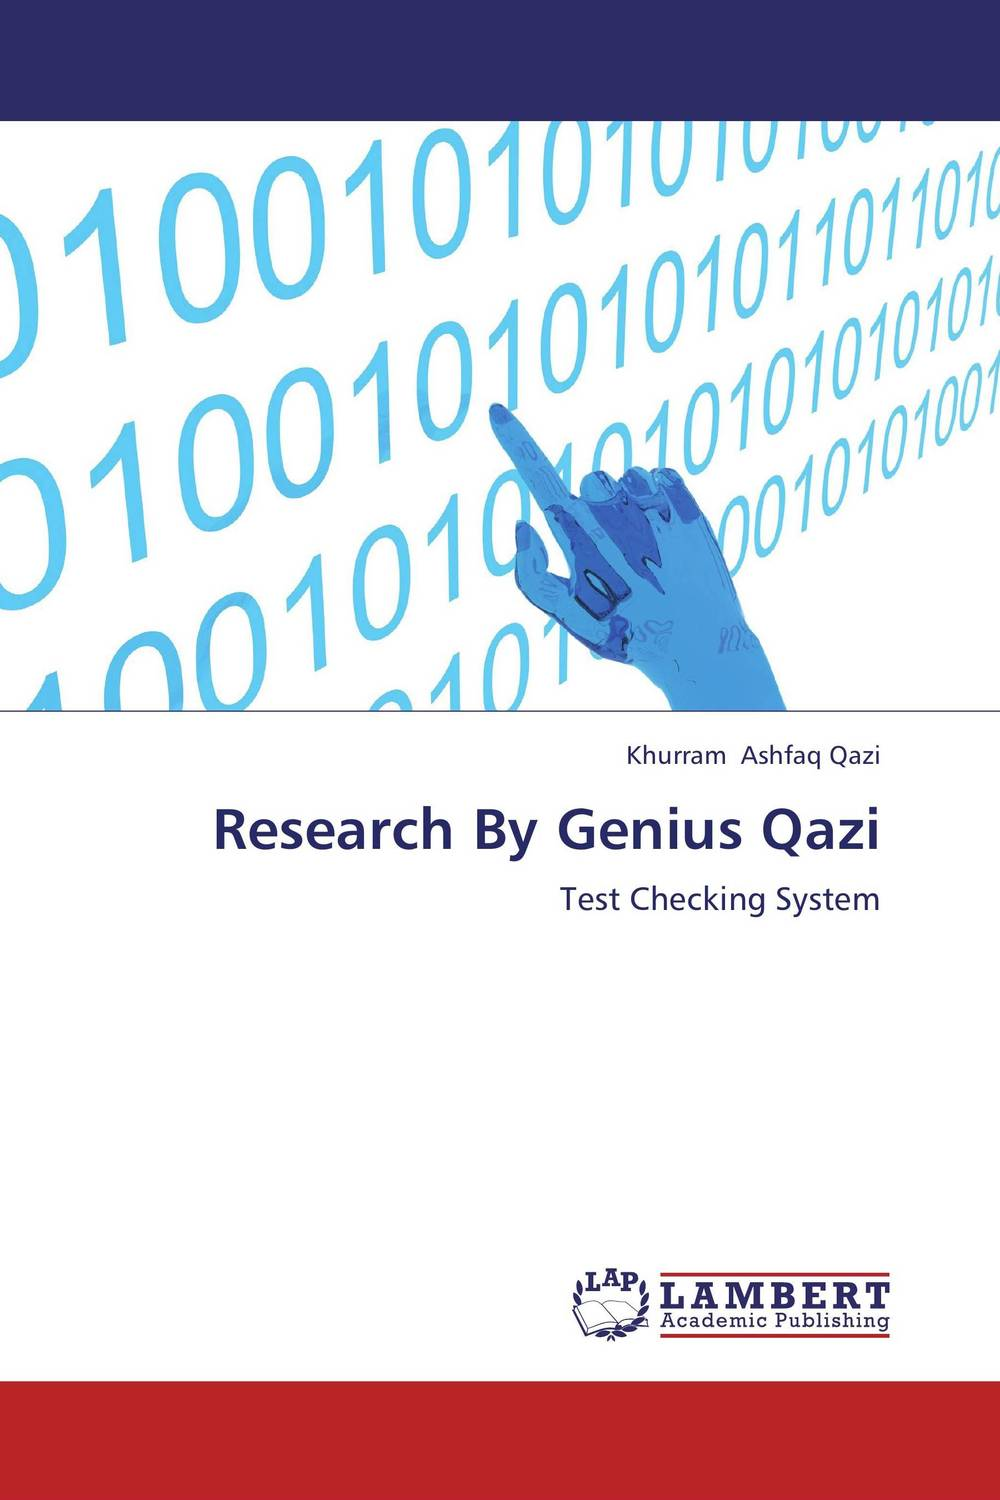 Research By Genius Qazi kitred5f740unv21200 value kit rediform guest check book red5f740 and universal copy paper unv21200